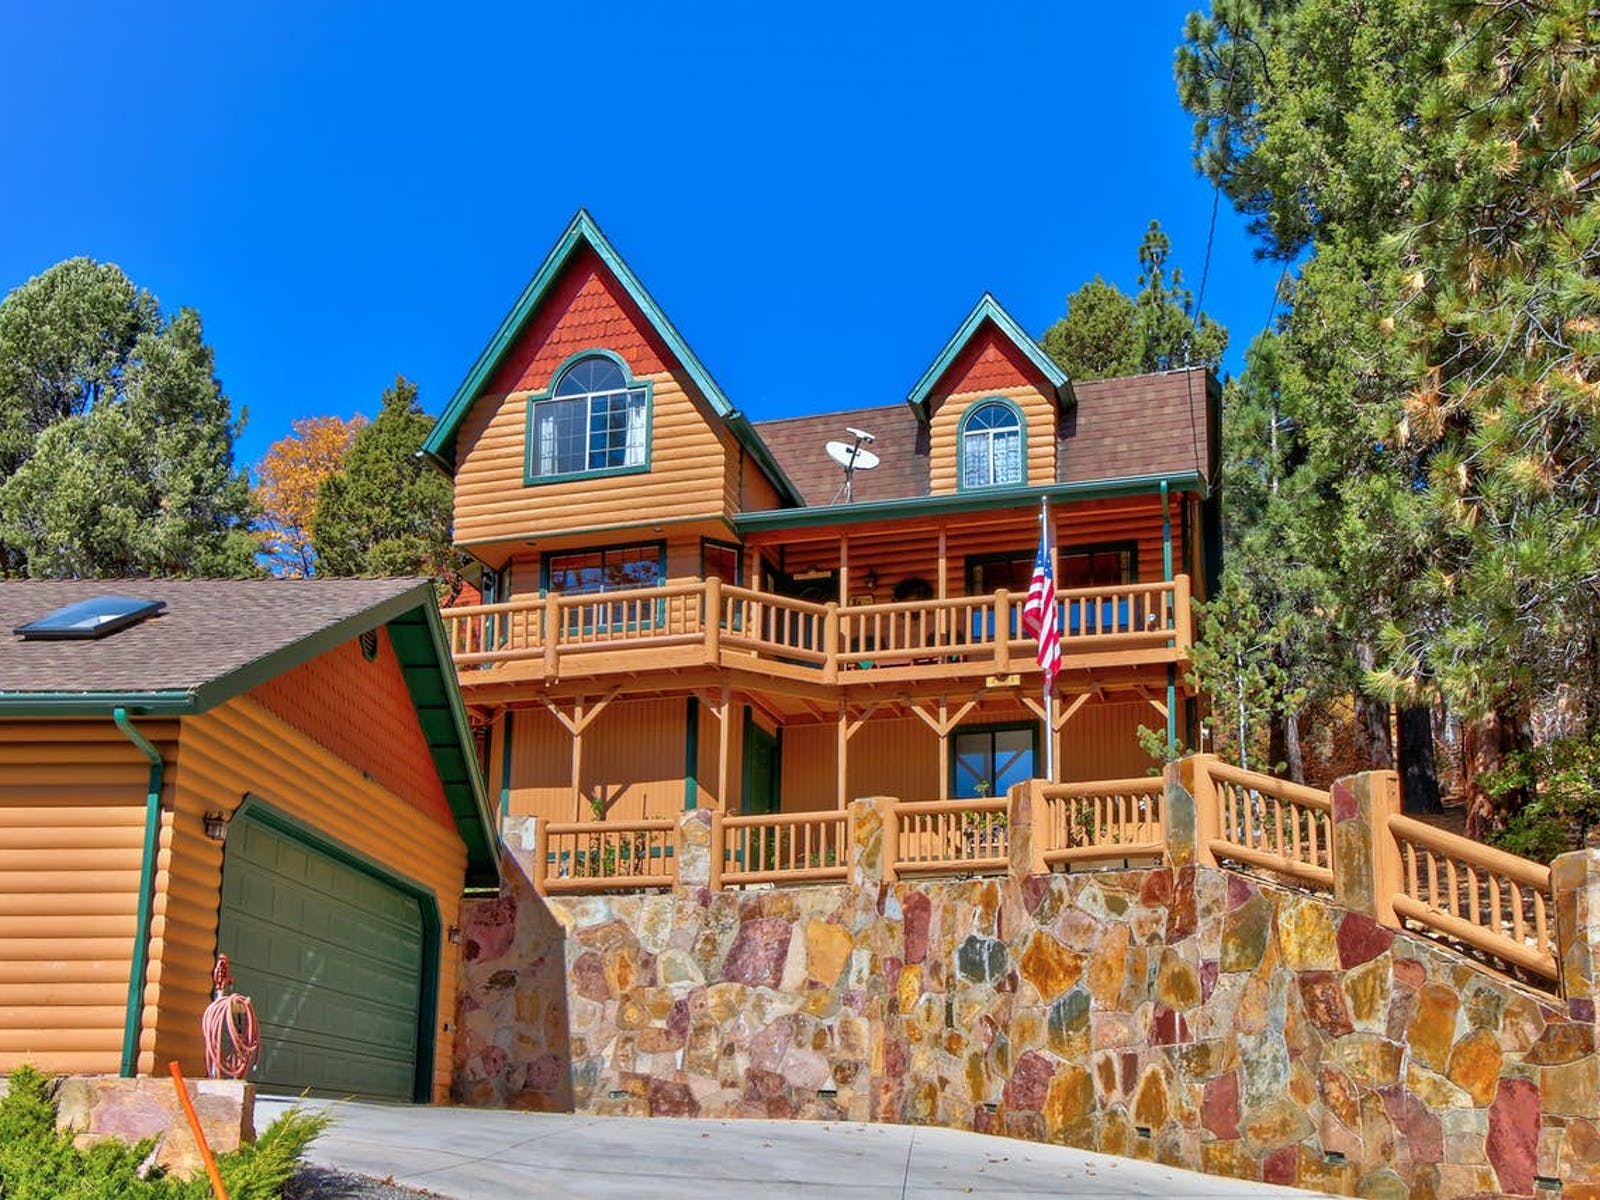 Two story vacation cabin in Big Bear, CA with detached garage